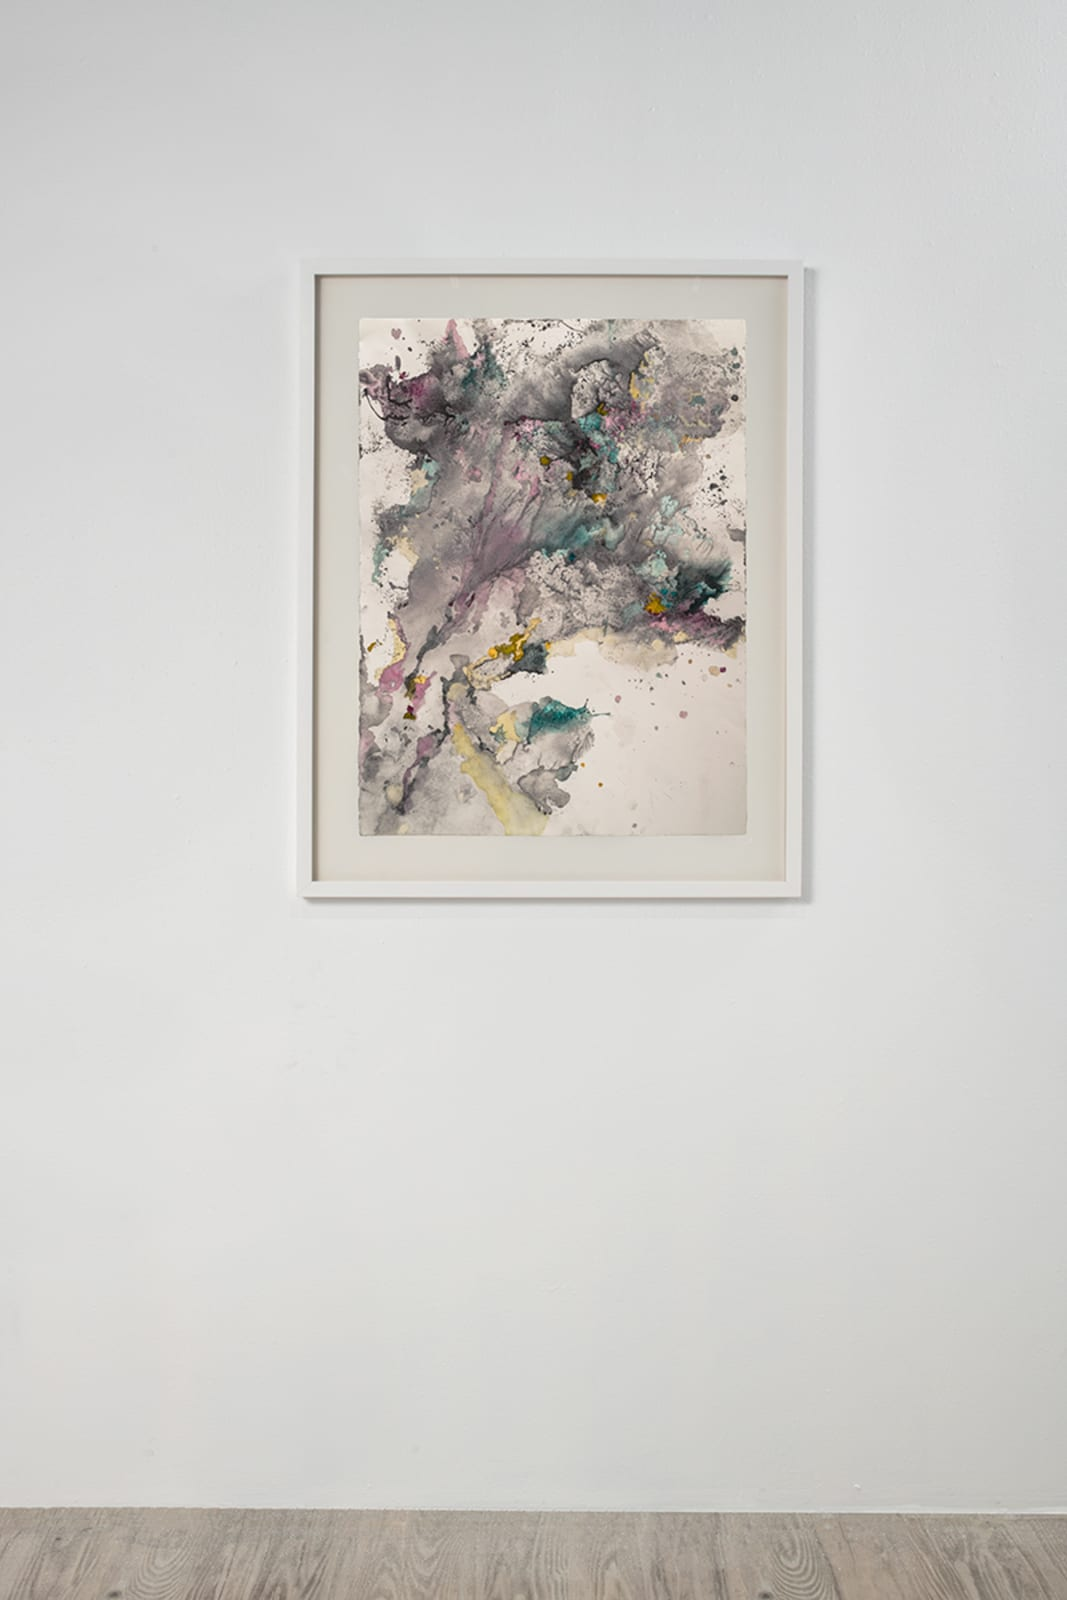 Michele Colburn Updraft, 2020 Gunpowder and watercolors on Arches paper 76.2 x 55.9 cm, 30 x 22 in. (Frame not included) Photo: Lee Stalsworth